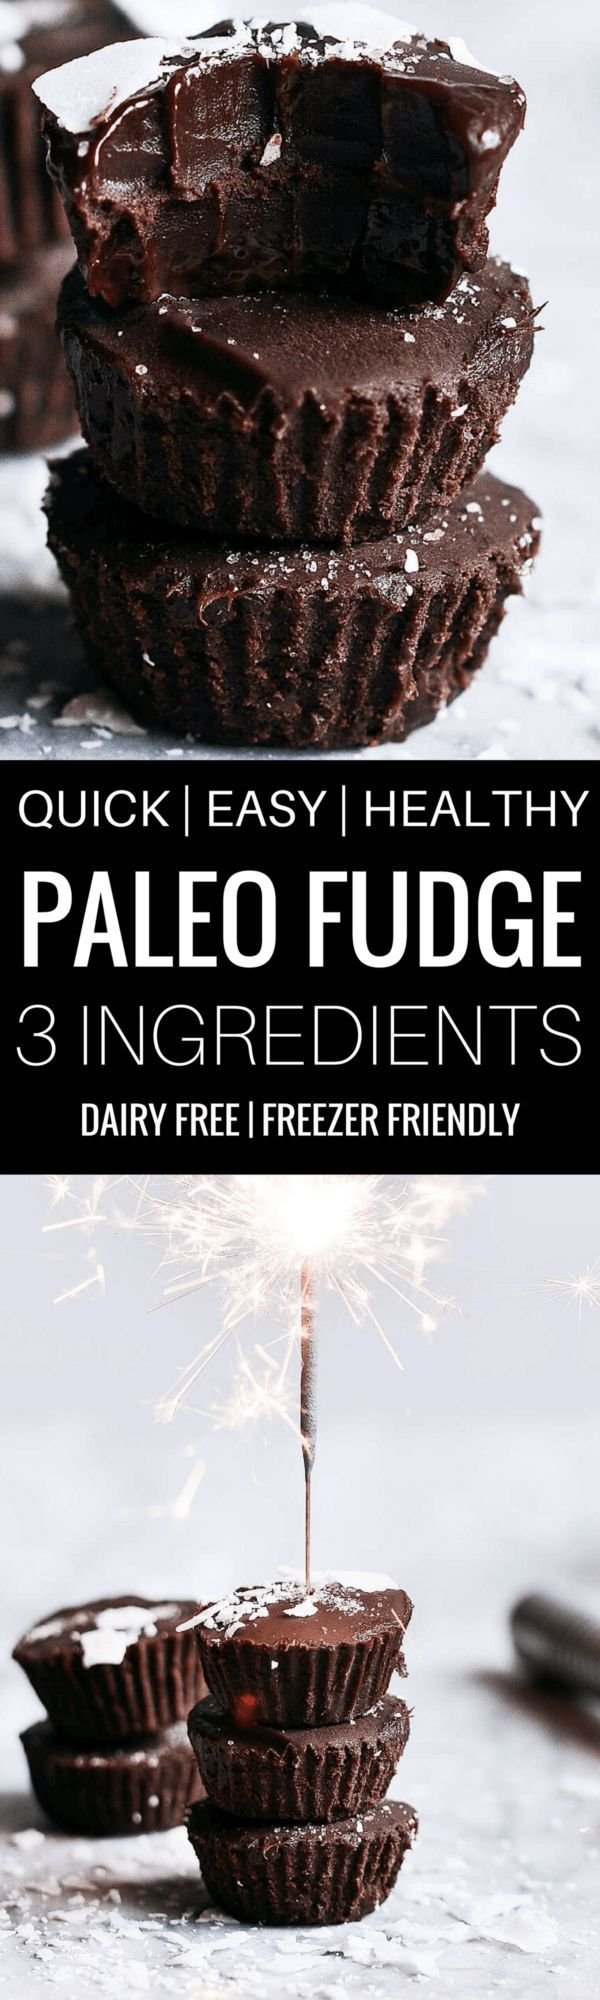 Ready for some chocolate goodness?! These easy paleo treats are deliciously rich and creamy. Made without dairy, these fudge bites are vegan� And dare I say, good for you? Ha ha, I once saw that pin on Pinterest about chocolate coming from a green plant;